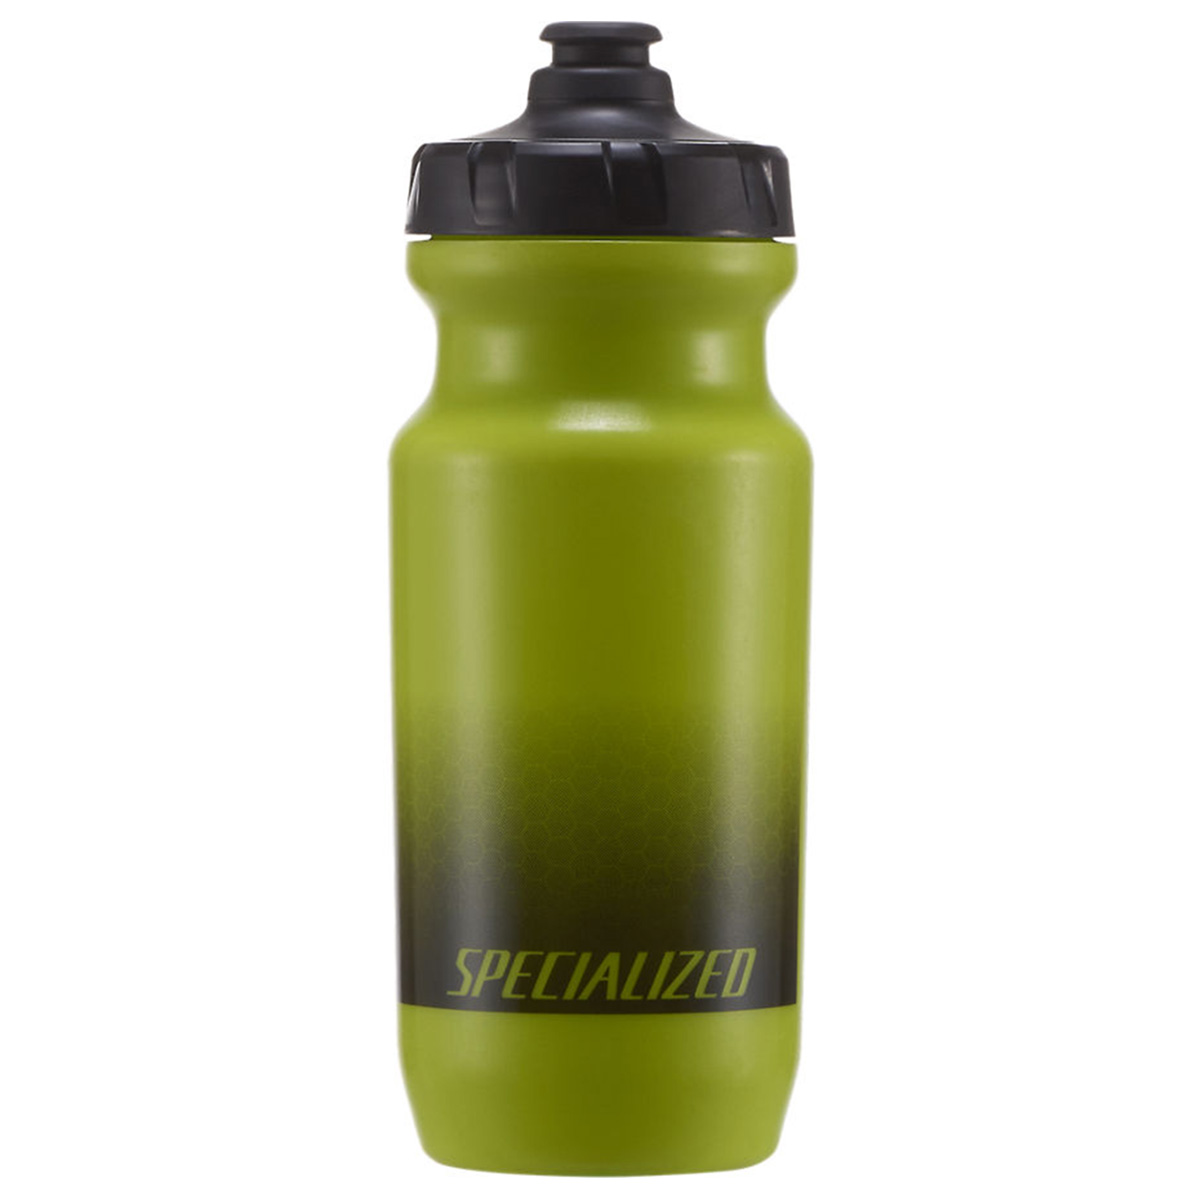 BOUTEILLE SPECIALIZED LITTLE BIG MOUTH 21 OZ - VERT